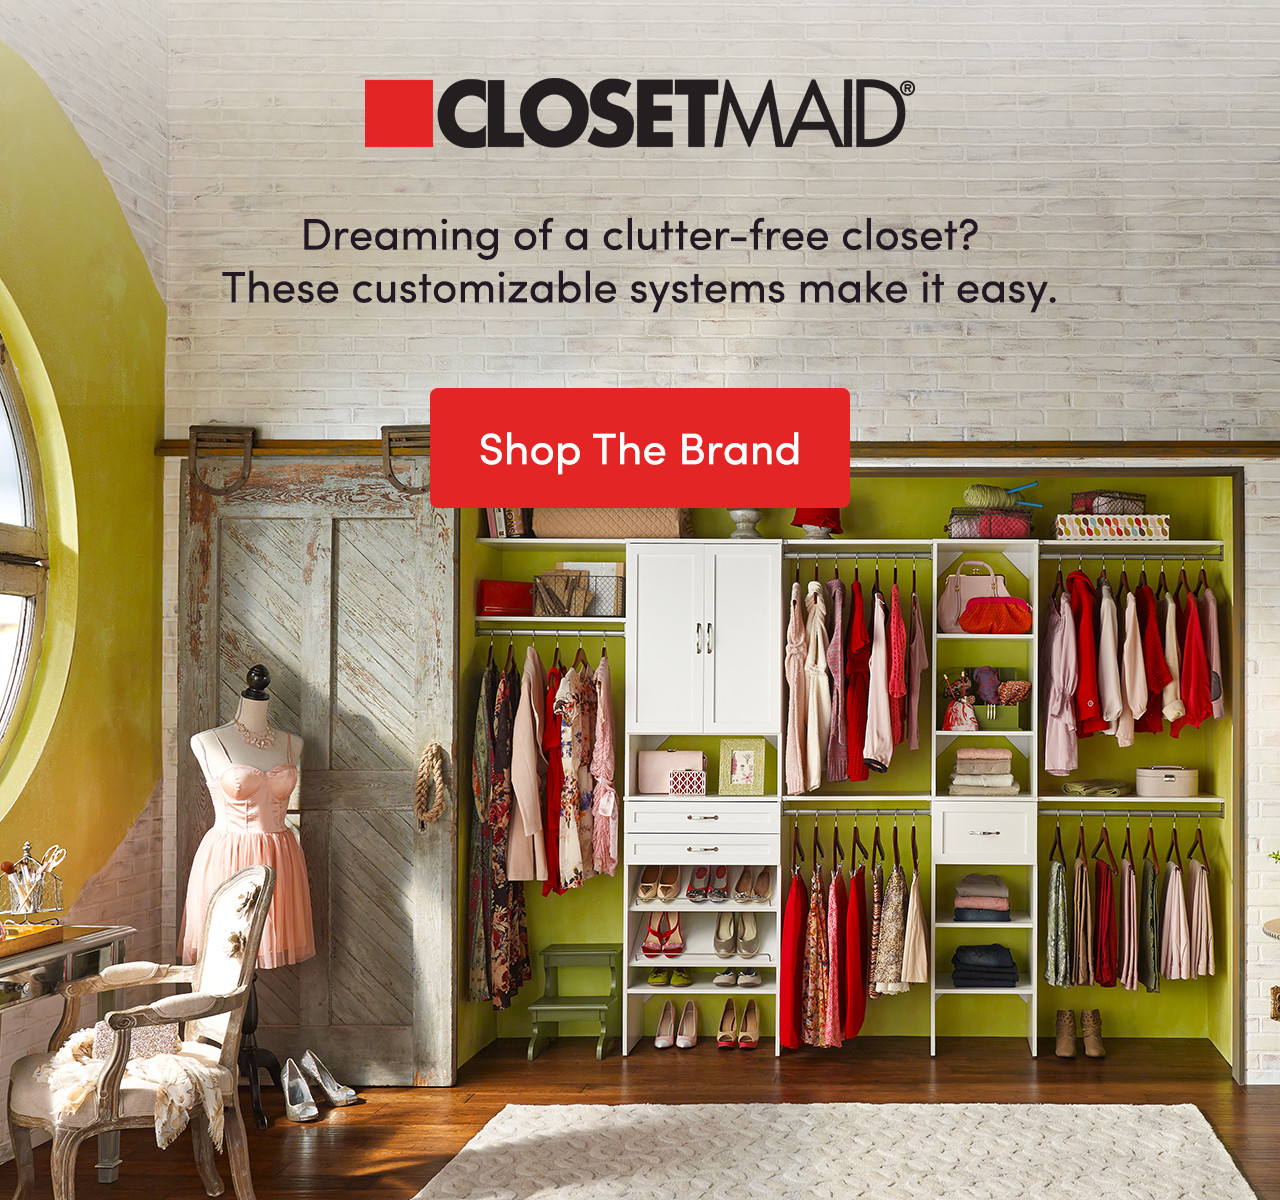 ClosetMaid